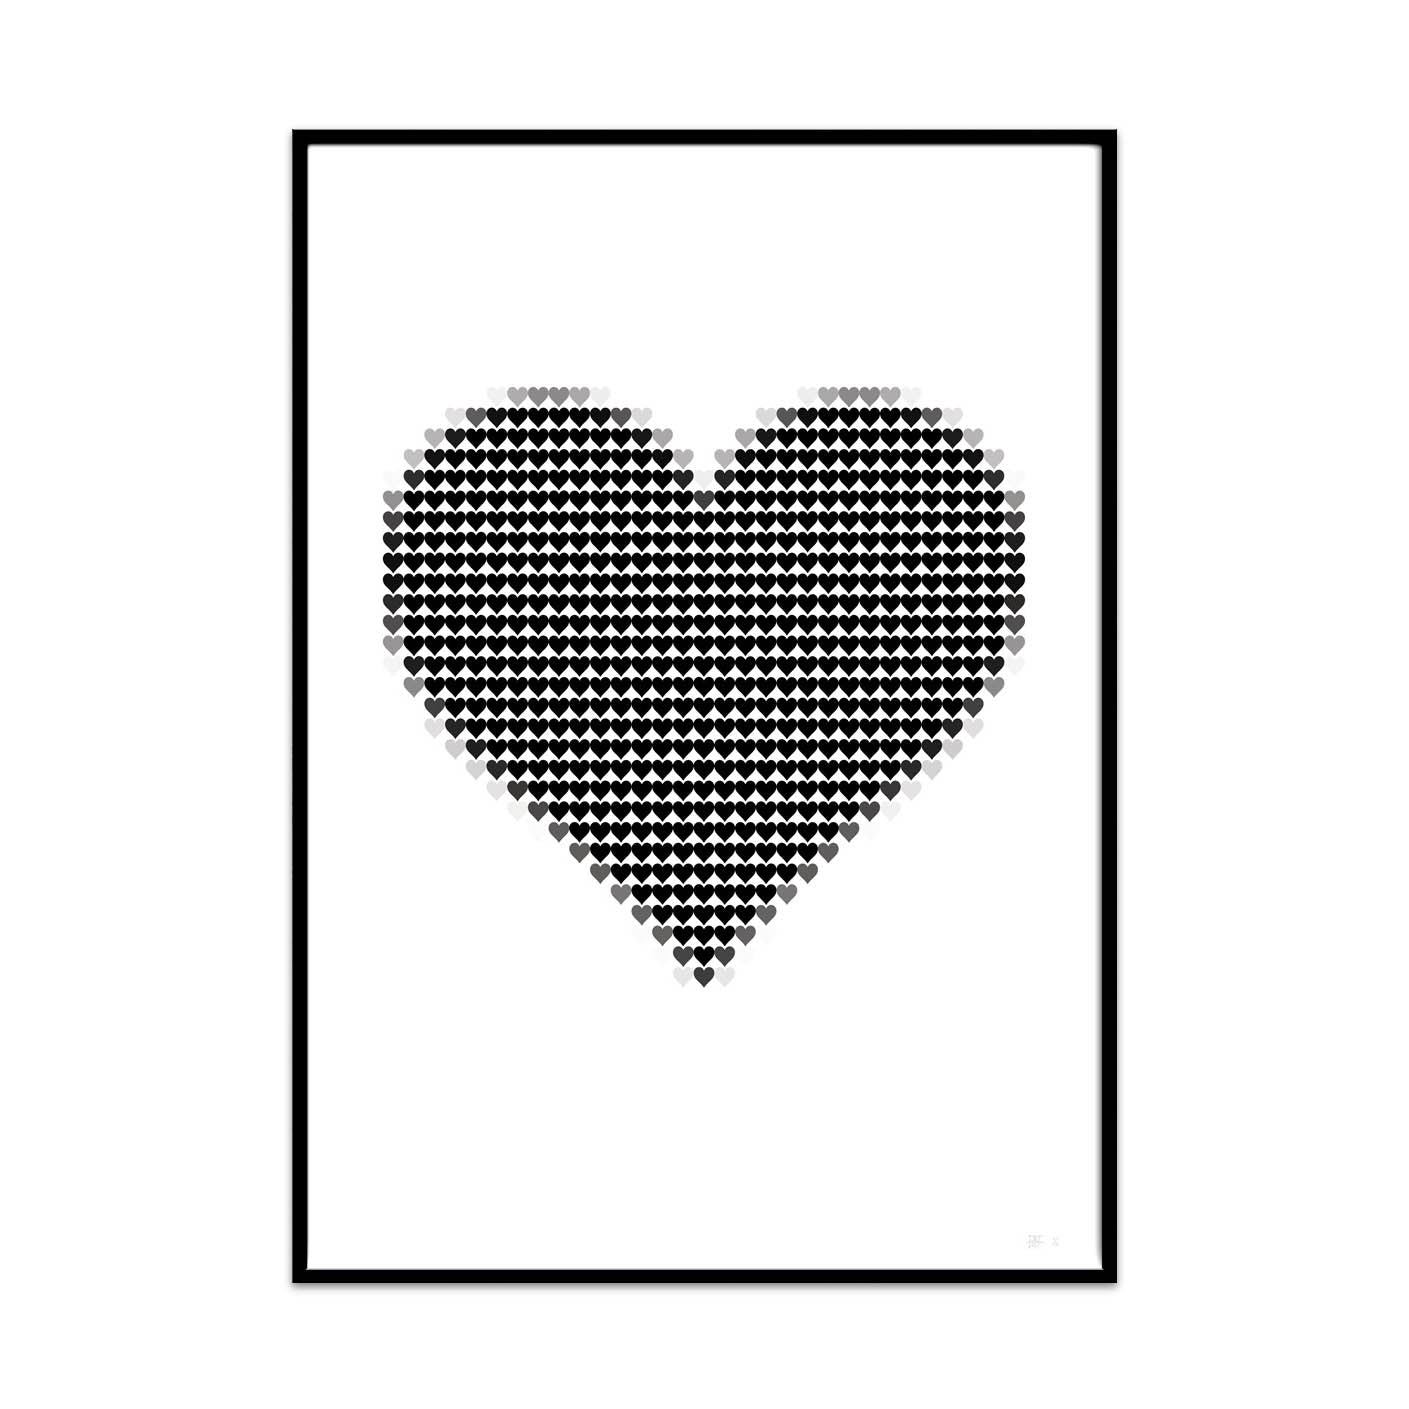 what Phil sees limited edition typography and photography art prints for your home and gallery wall this print is called my pixel heart.